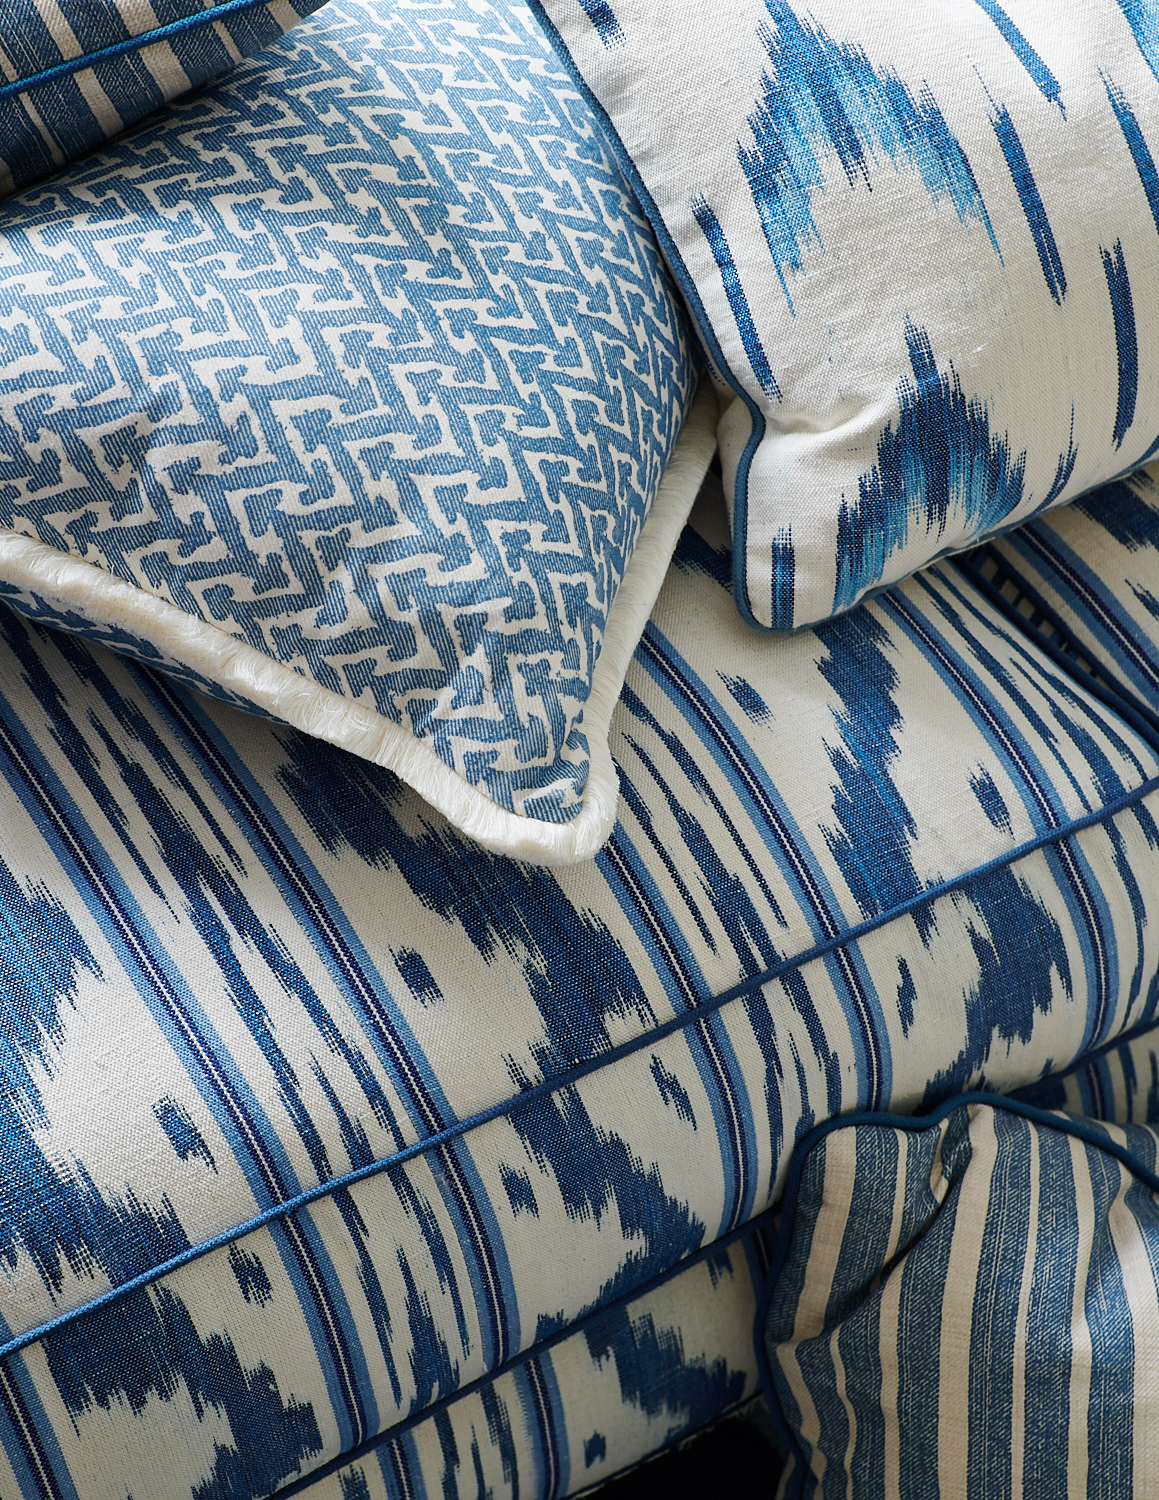 Detail of patterned sofa with custom throw pillows